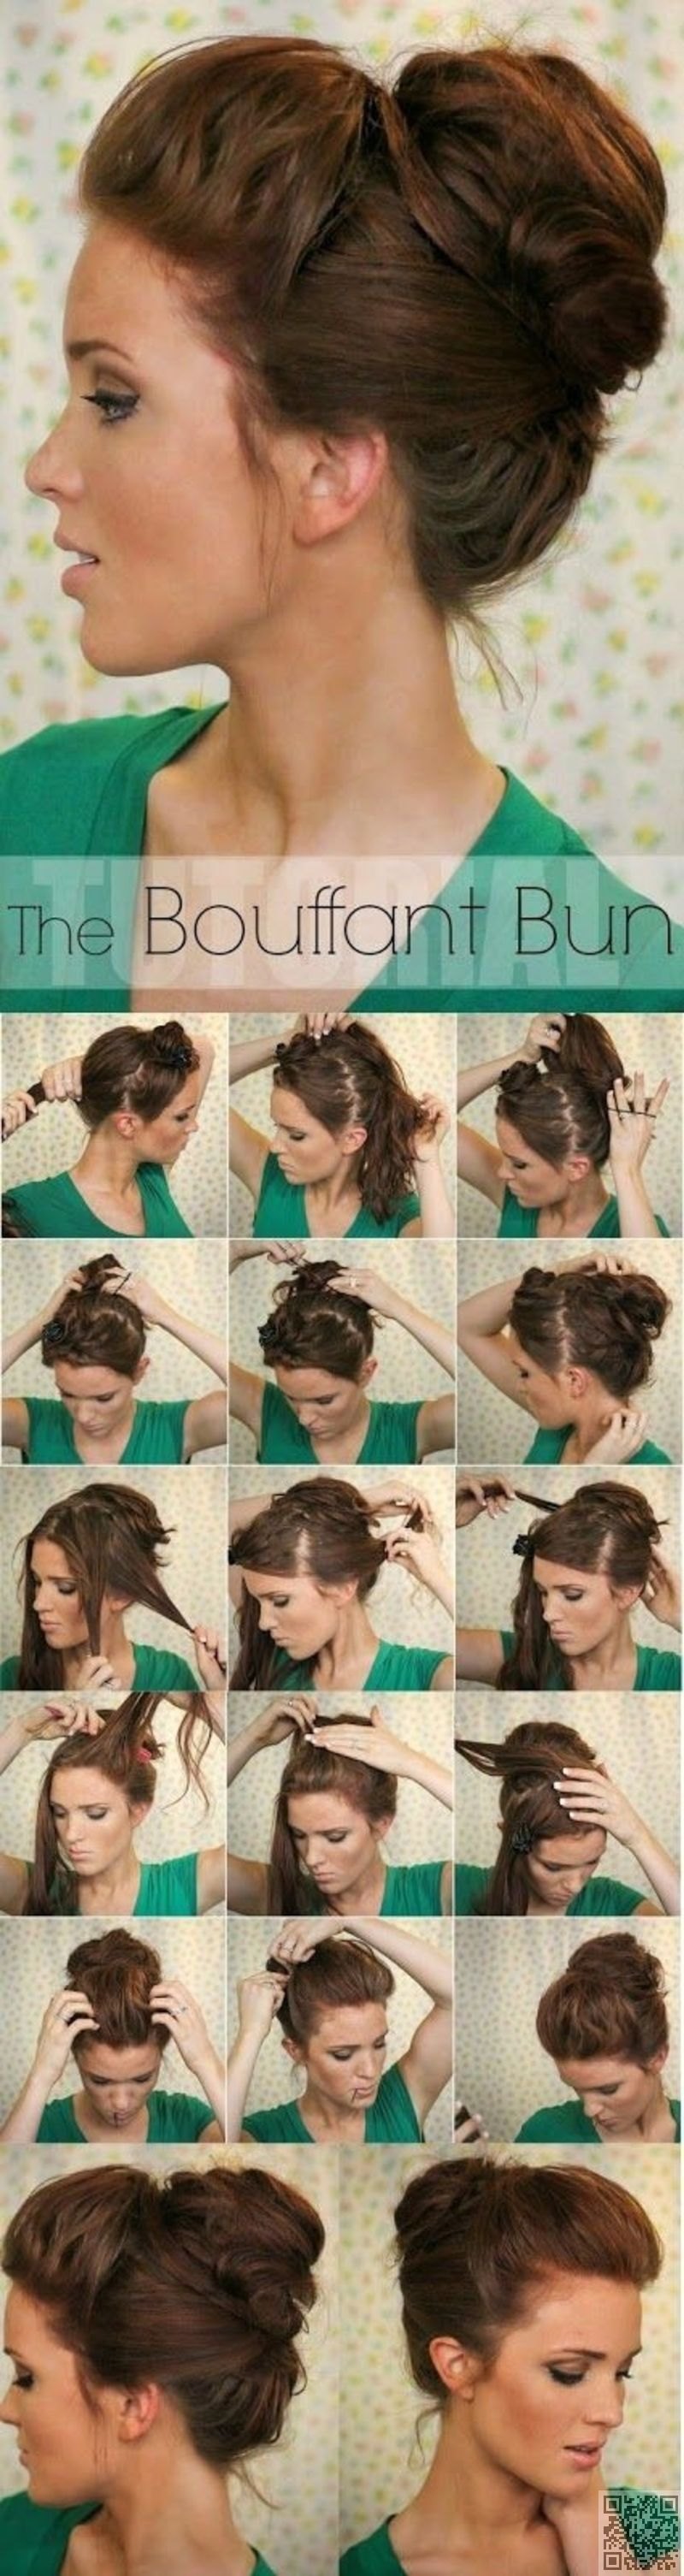 3 Bouffant Bun Tame Your Tresses with These Gorgeous